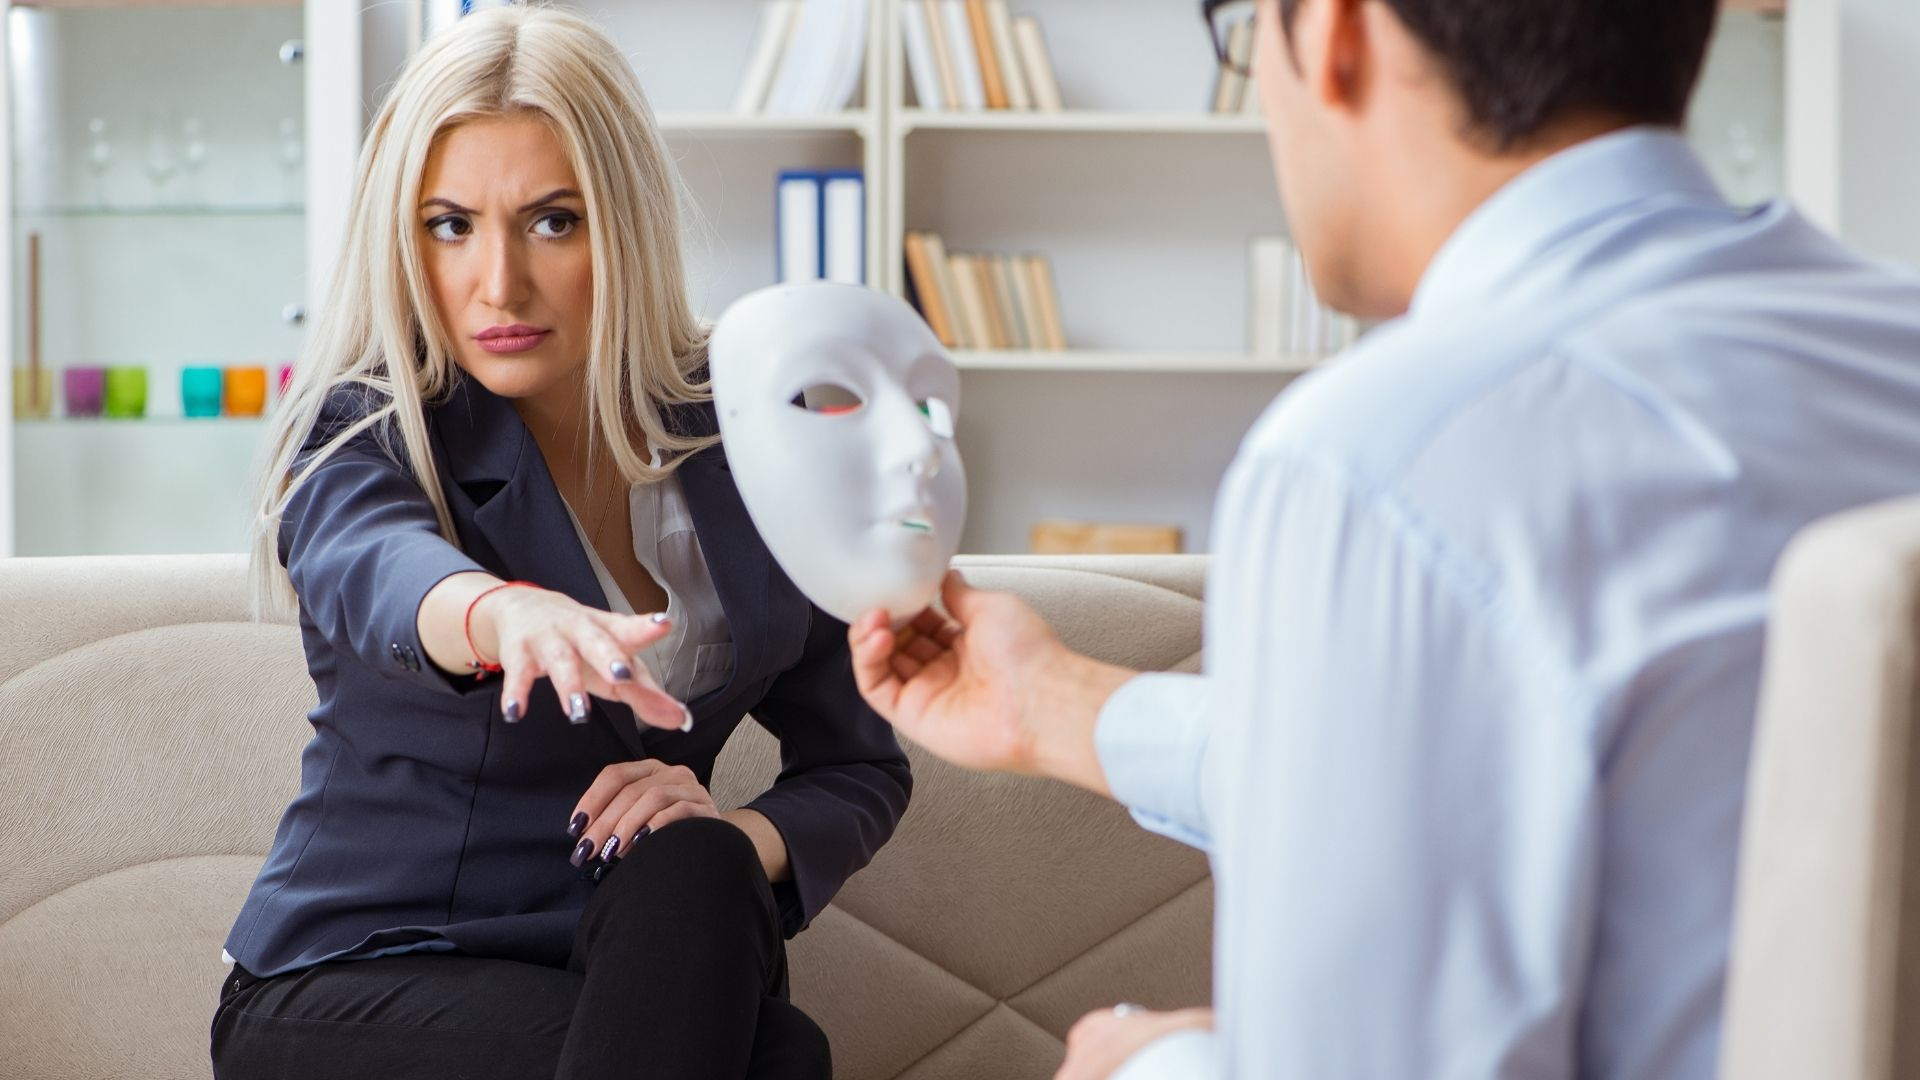 woman mask - Can a Narcissistic Person Ever Change?